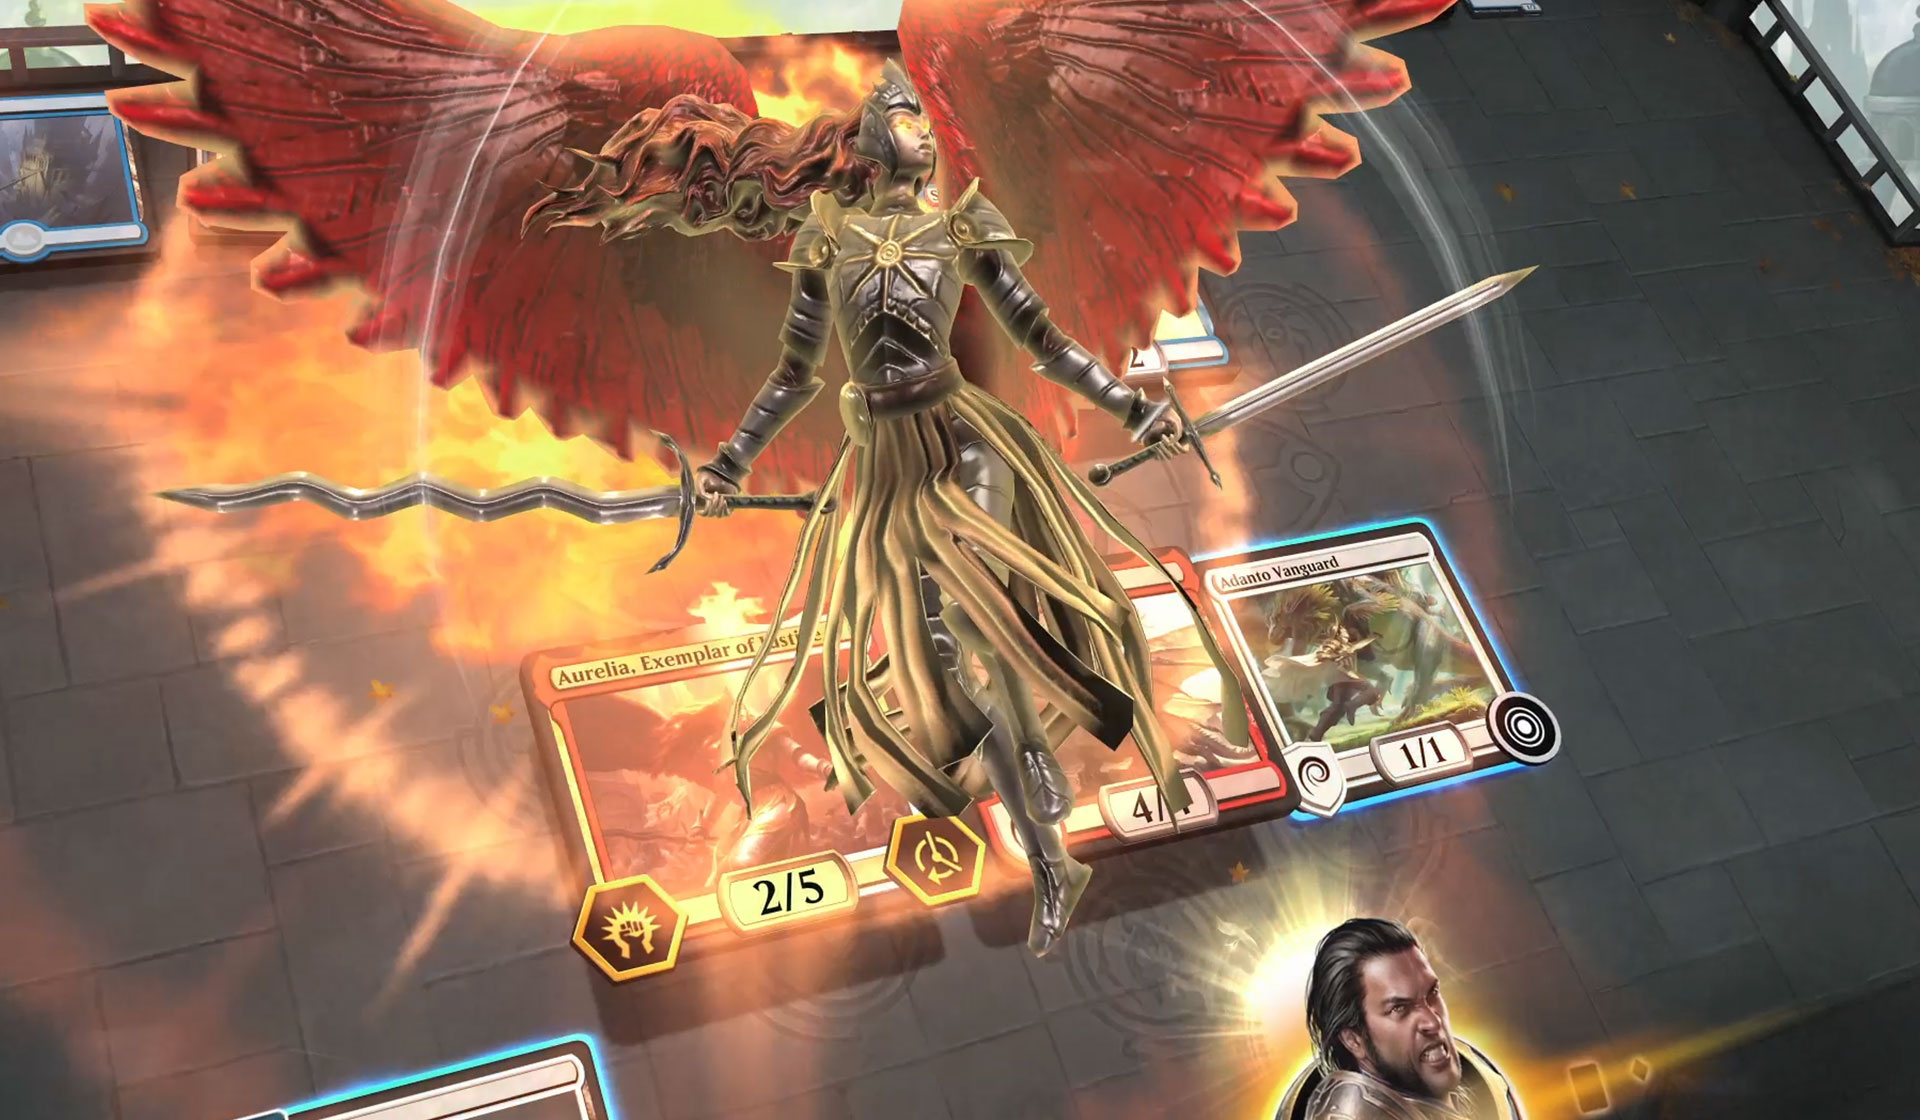 Talking with the Magic: The Gathering Arena crew about the past